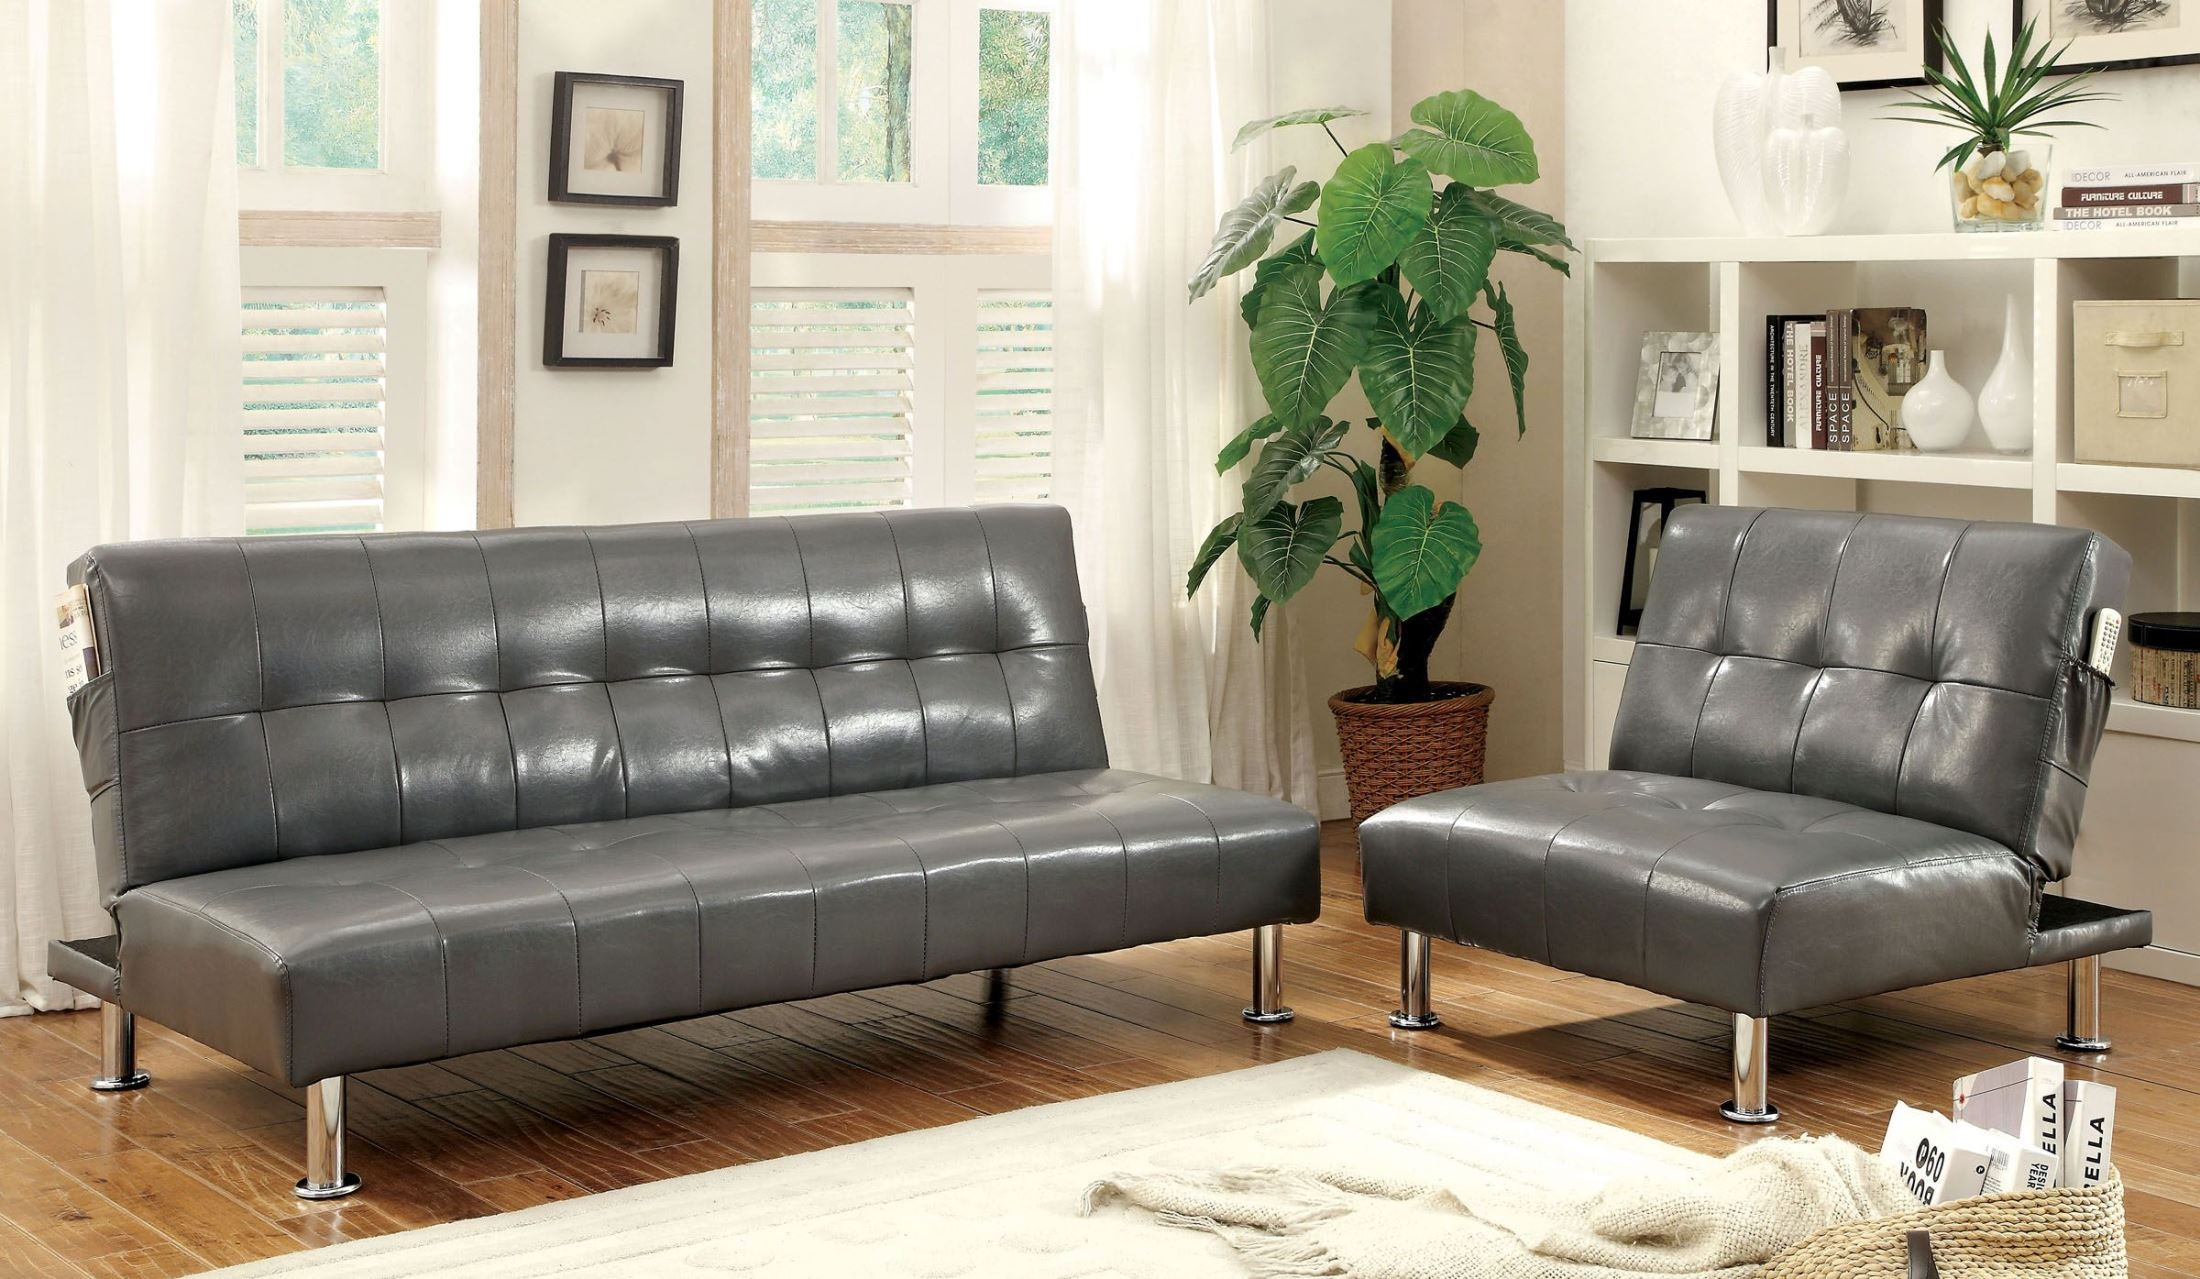 Bulle Gray Leatherette Living Room Set throughout 10 Genius Concepts of How to Make Futon Living Room Set